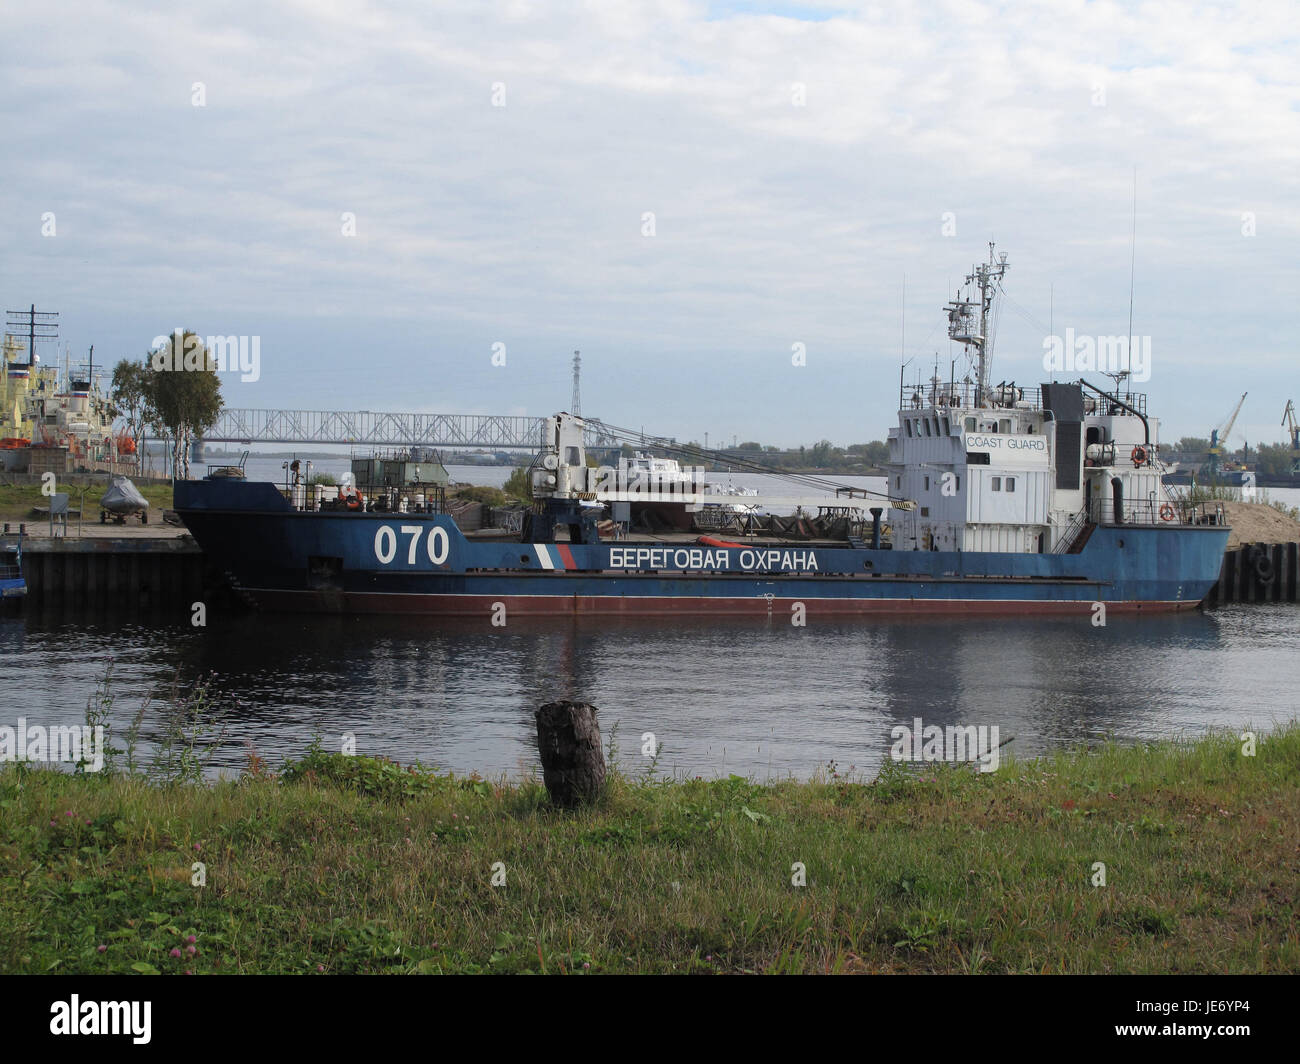 Russia, Archangelsk, supply vessel, transport ship, transport ship, ship, freighter, transport, landing stage, invest, - Stock Image